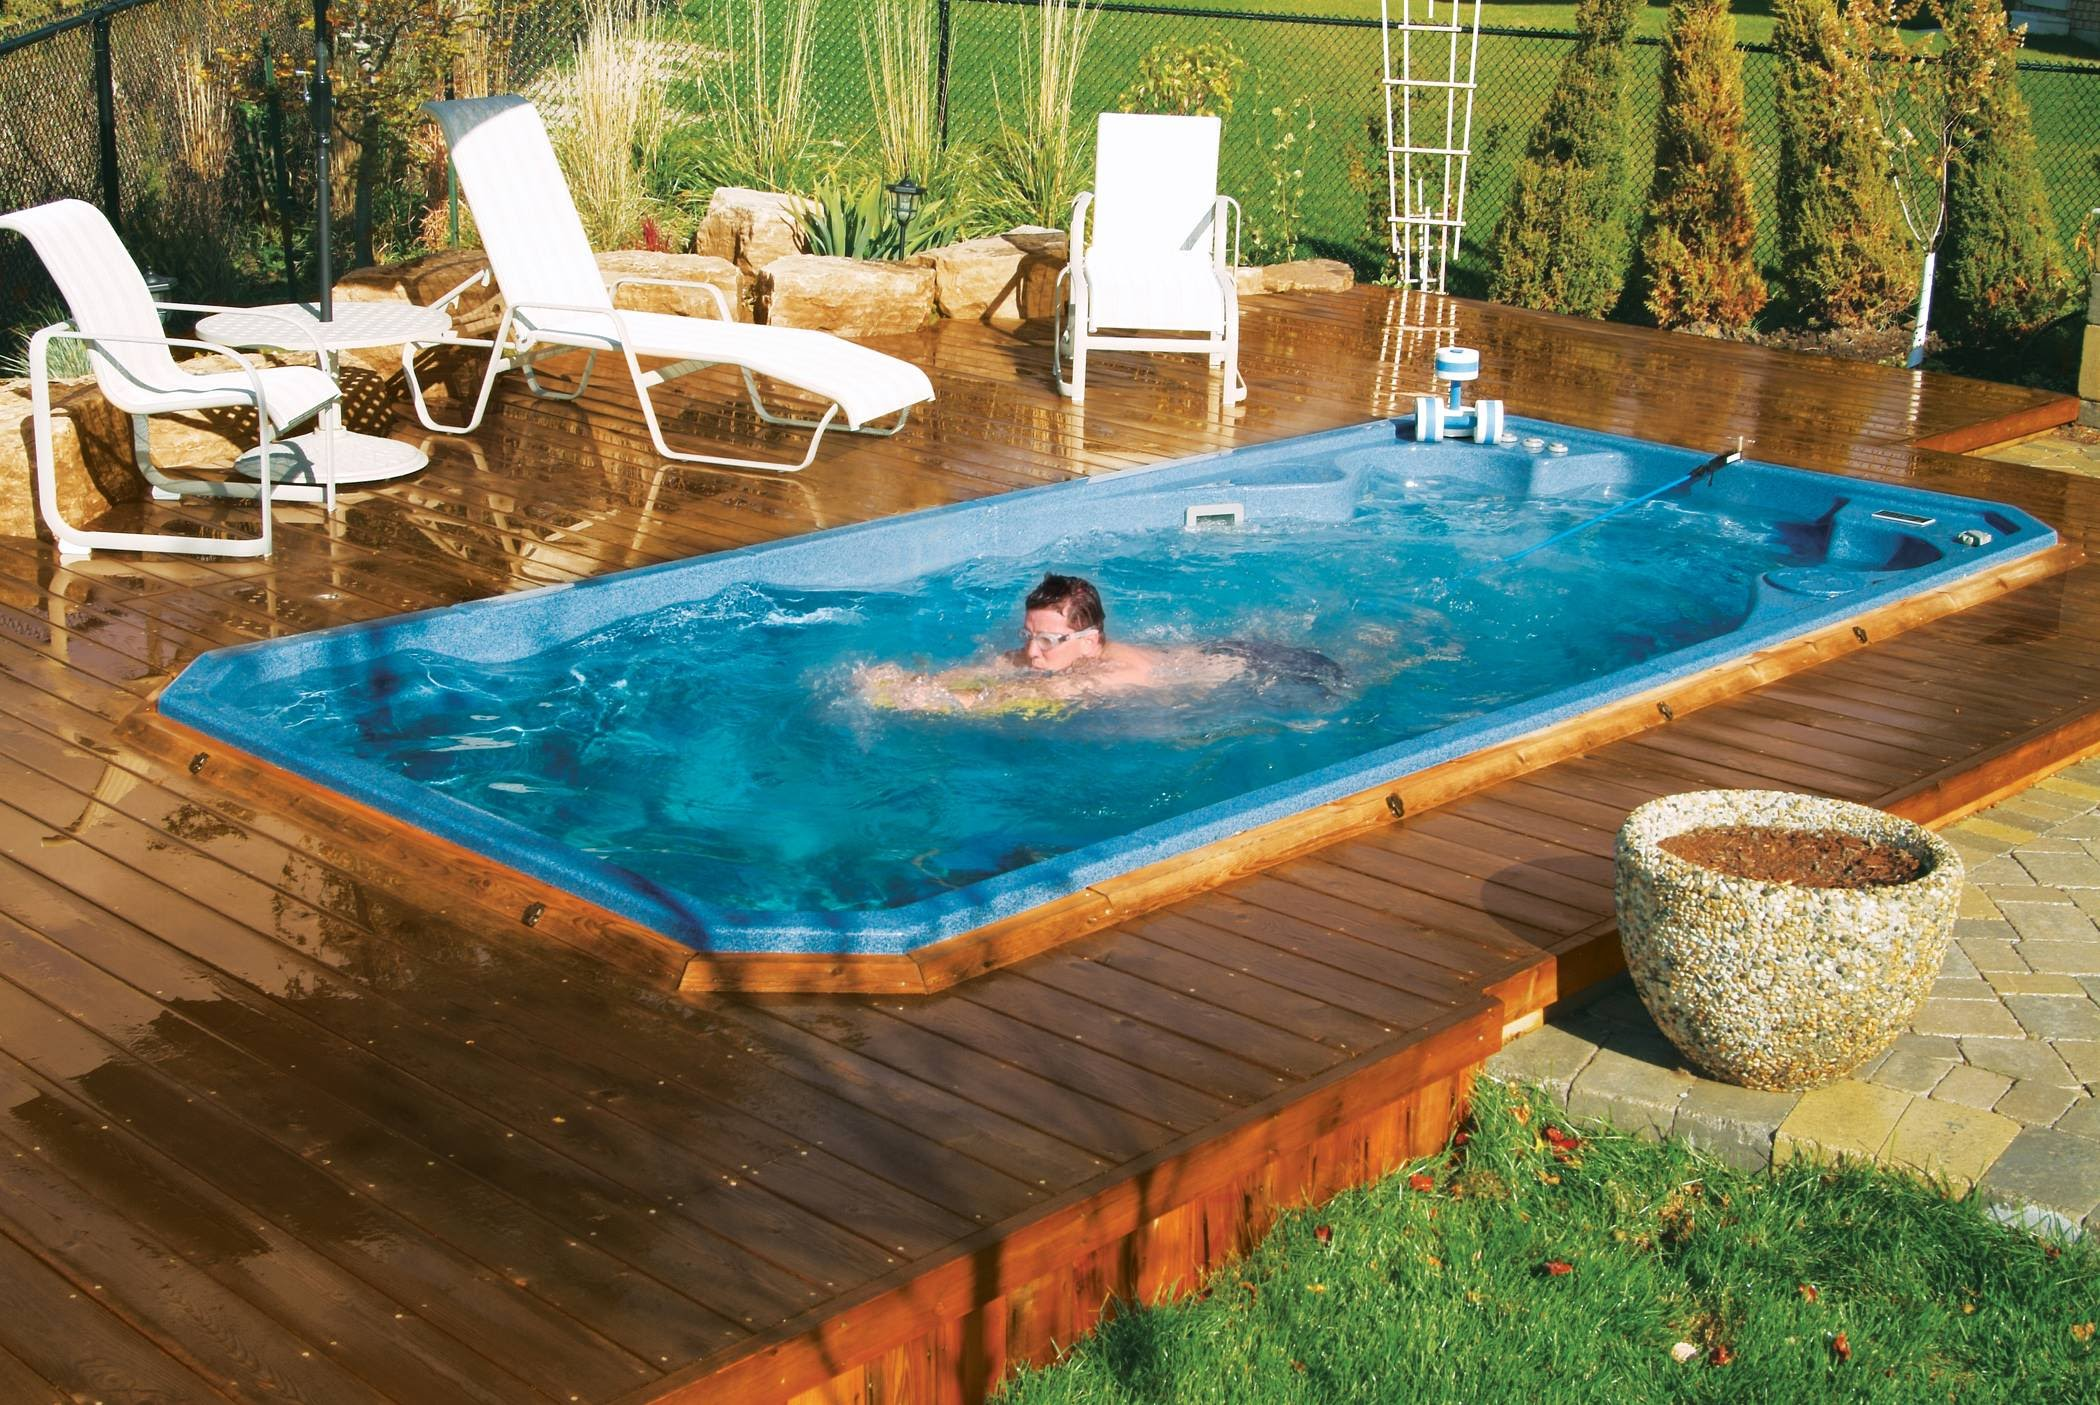 Jacuzzi Endless Pool Swim Spas Fairfax Hot Tubs Inc